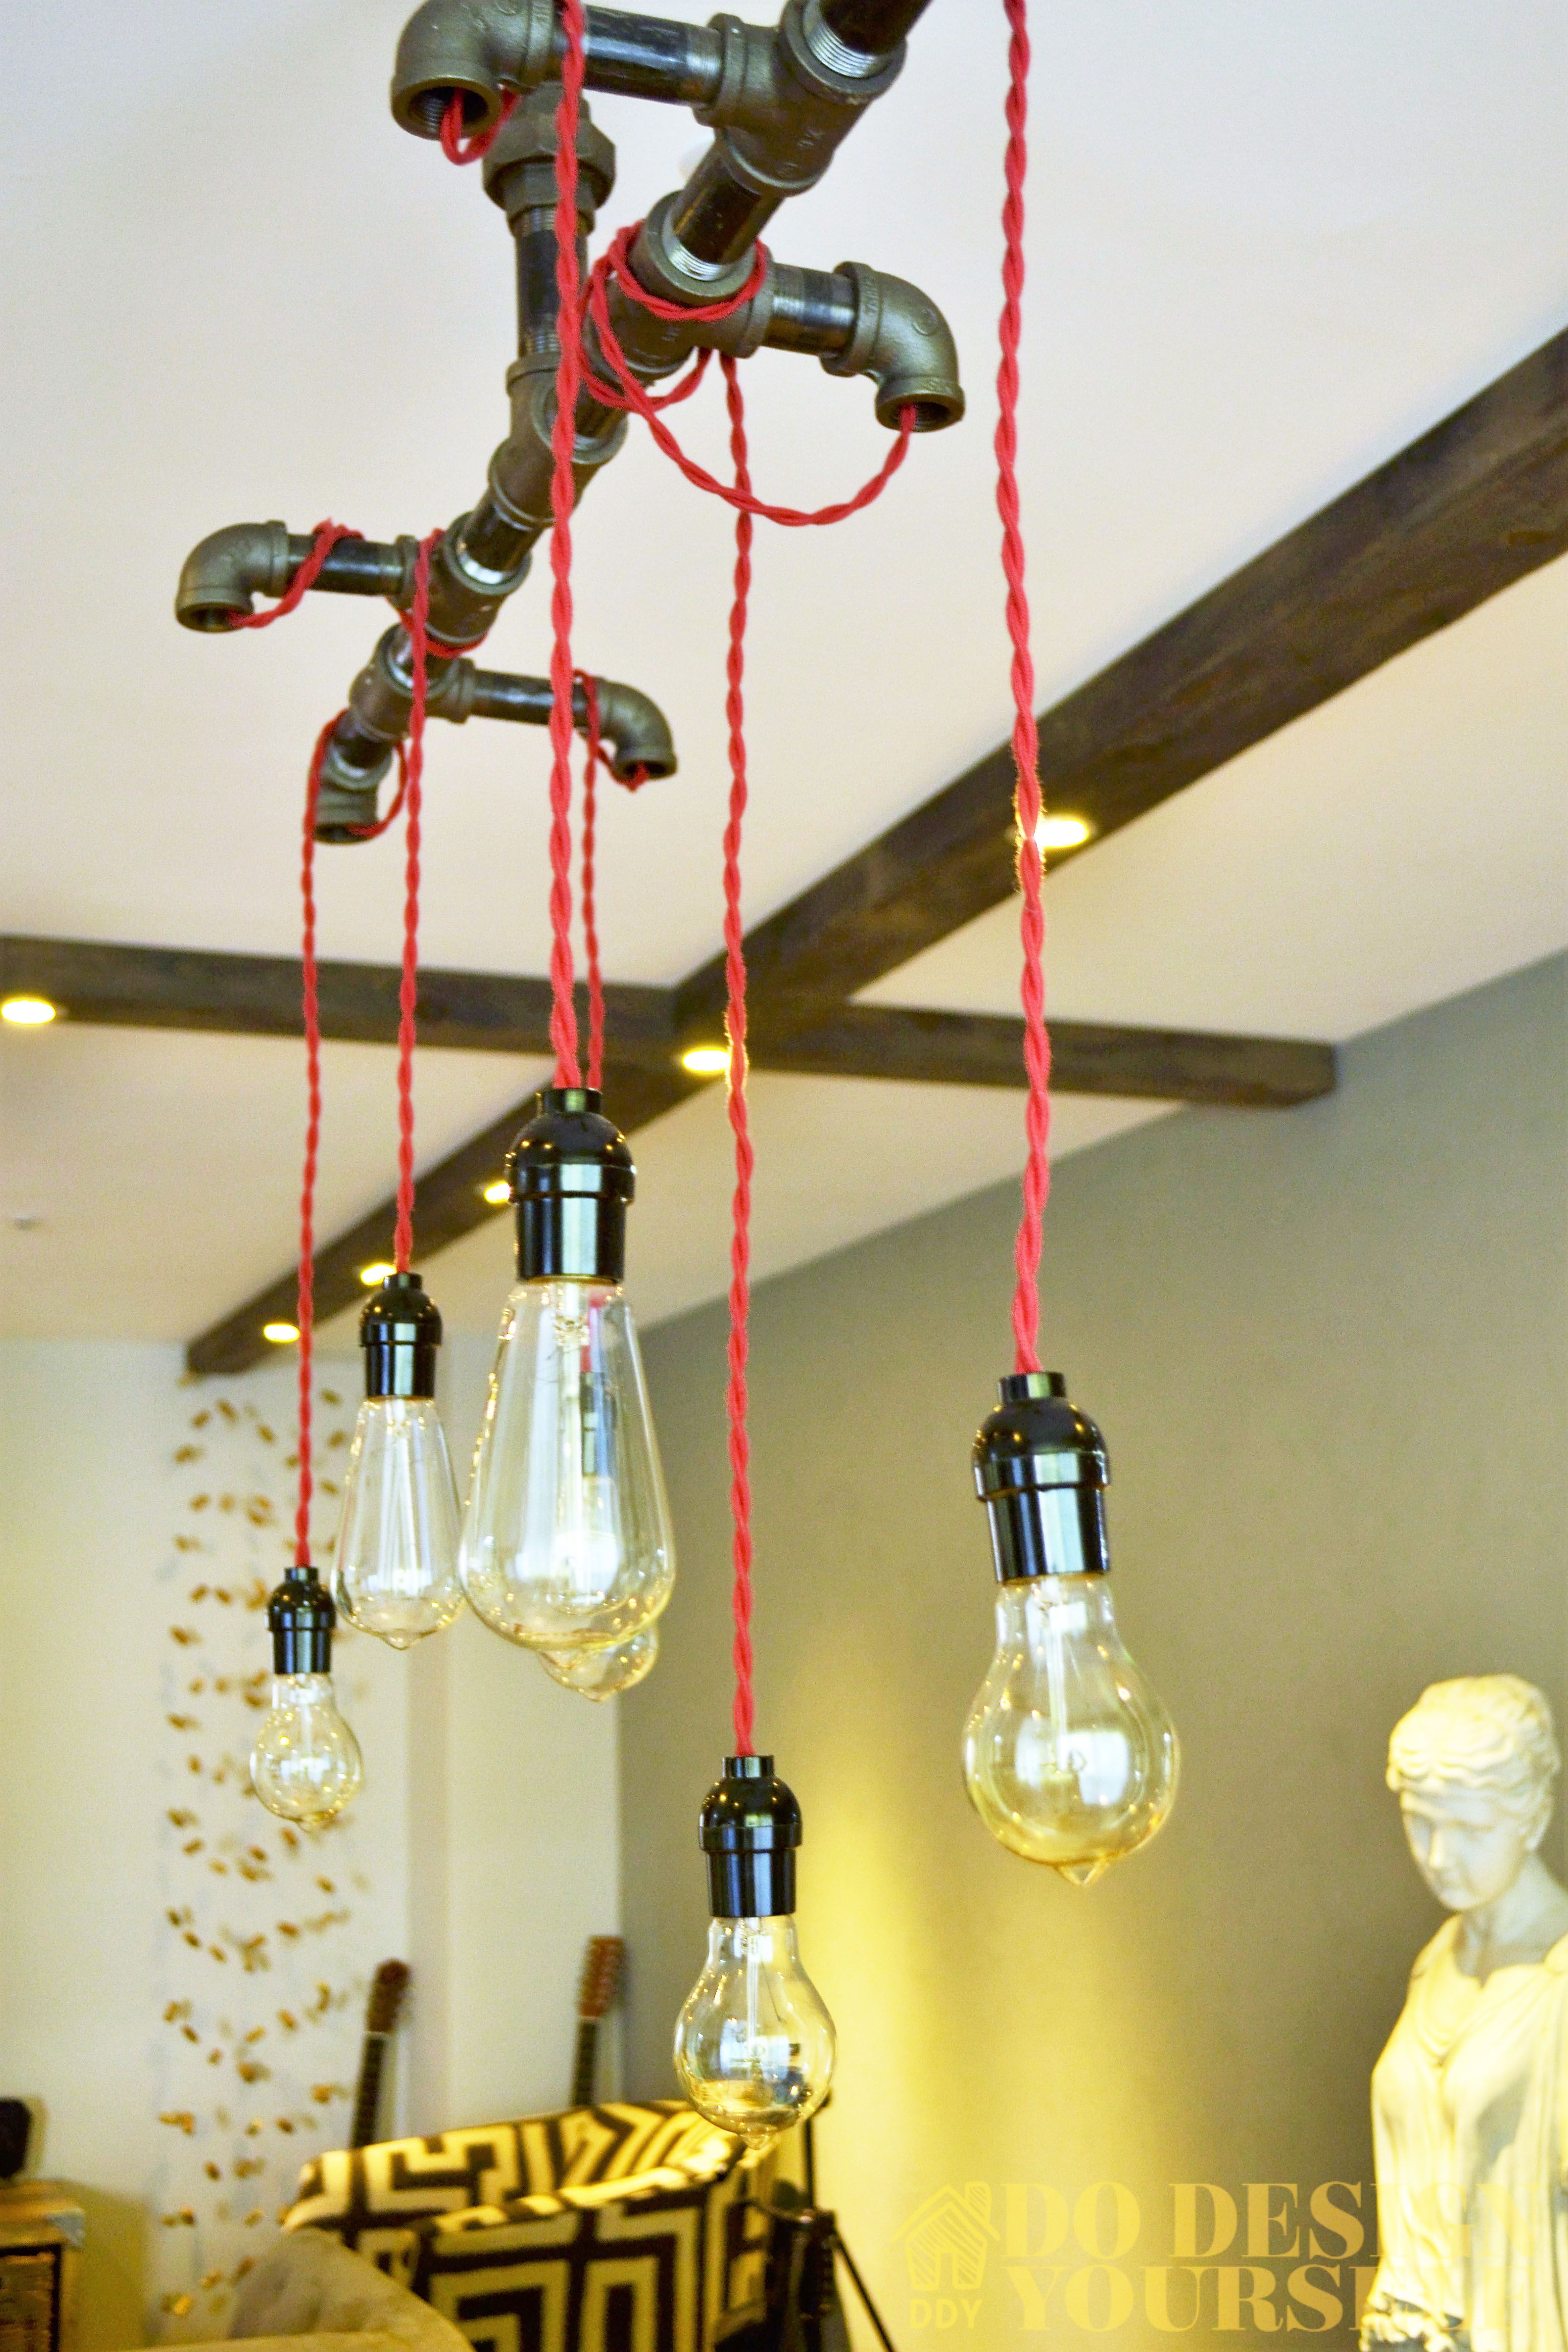 Diy Industrial Style Light Fixture With Red Twisted Wires And